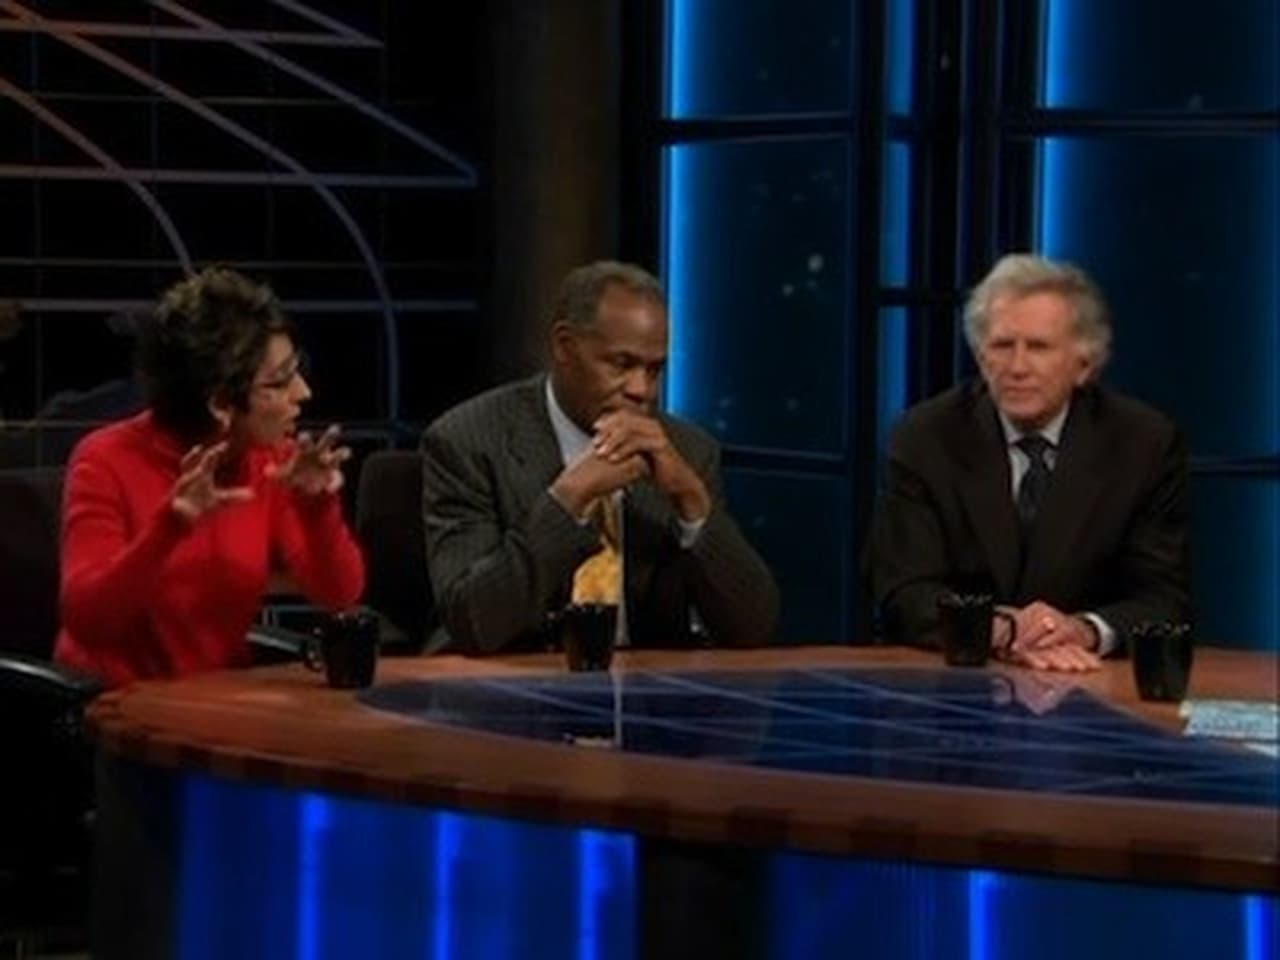 Real Time with Bill Maher - Season 4 Episode 2 : February 24, 2006